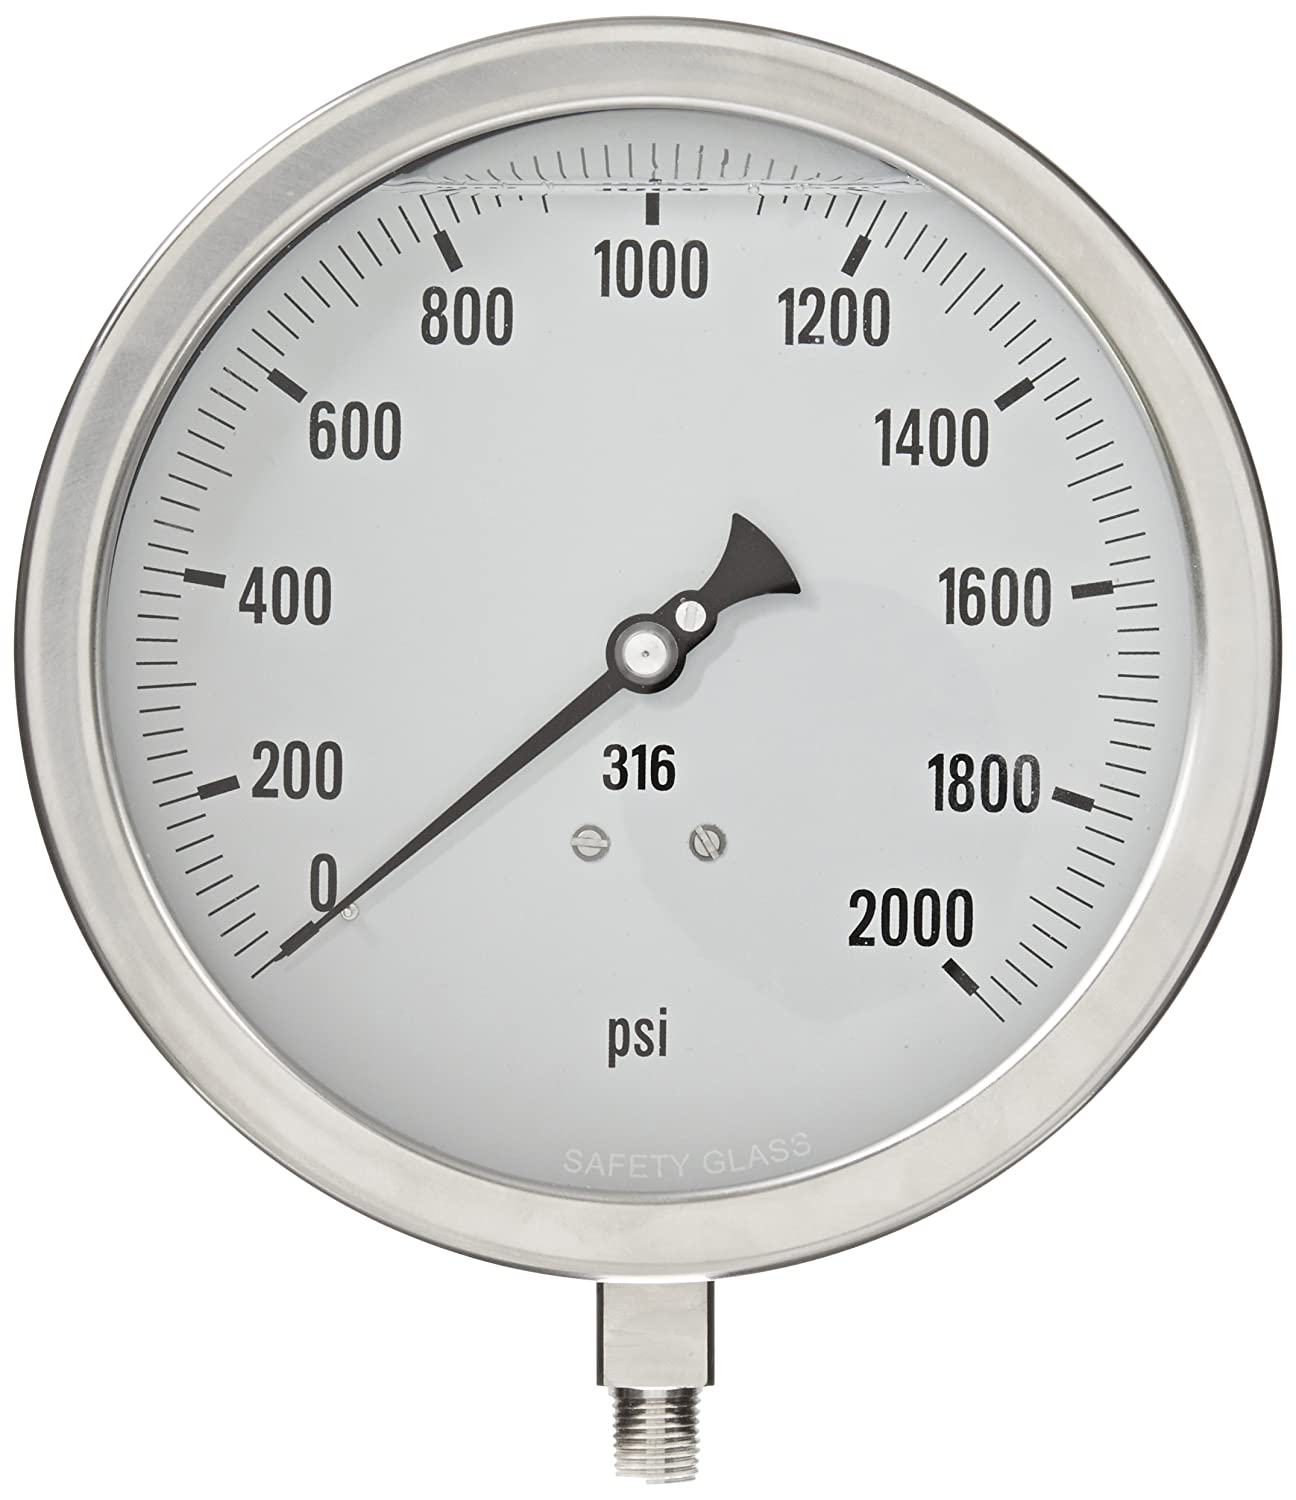 30//0//150 psi Range Removable Stainless Steel Bezel Bottom Mount Glycerine Filled Process Pressure Gauge with a Stainless Steel Case and Internals PIC Gauge 6001-2LCF-GF 6 Dial 1//2 Male NPT Connection Size and Laminated Safety Glass Lens